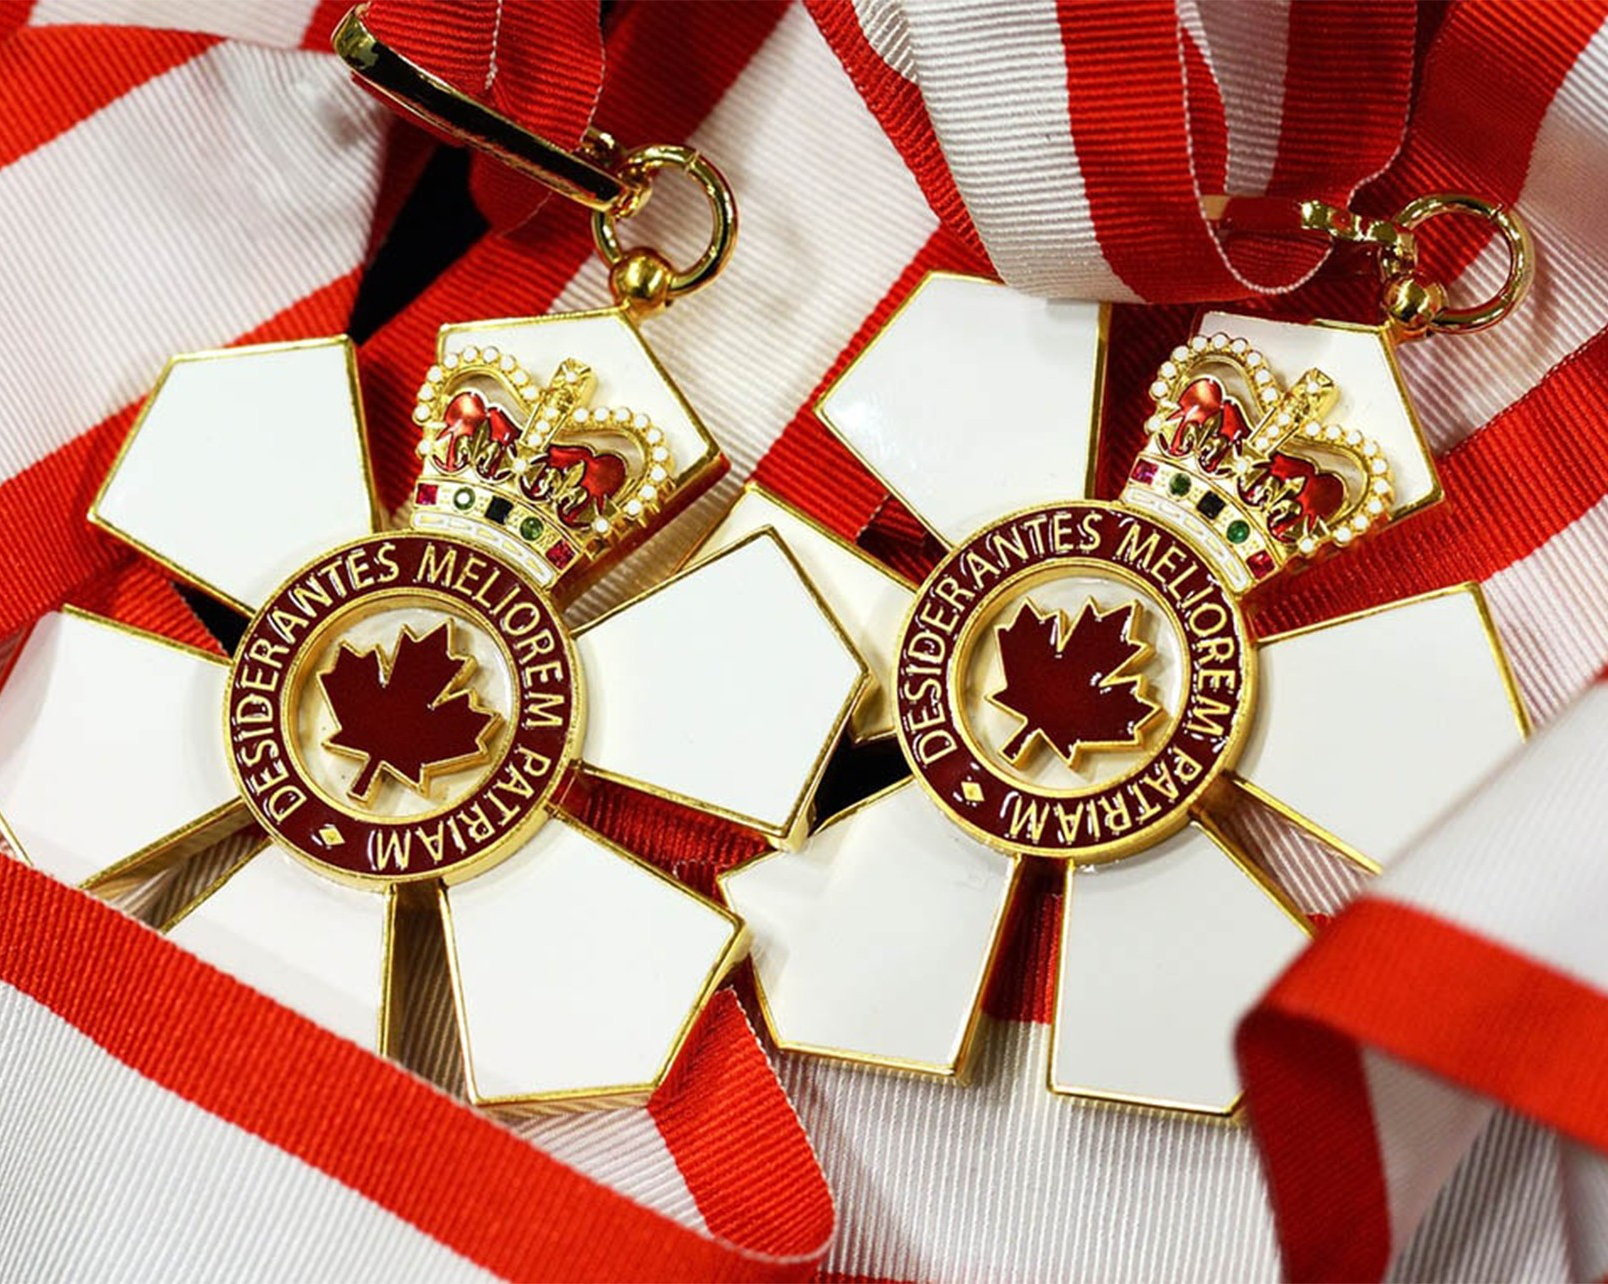 8 Concordians among newest Order of Canada honourees